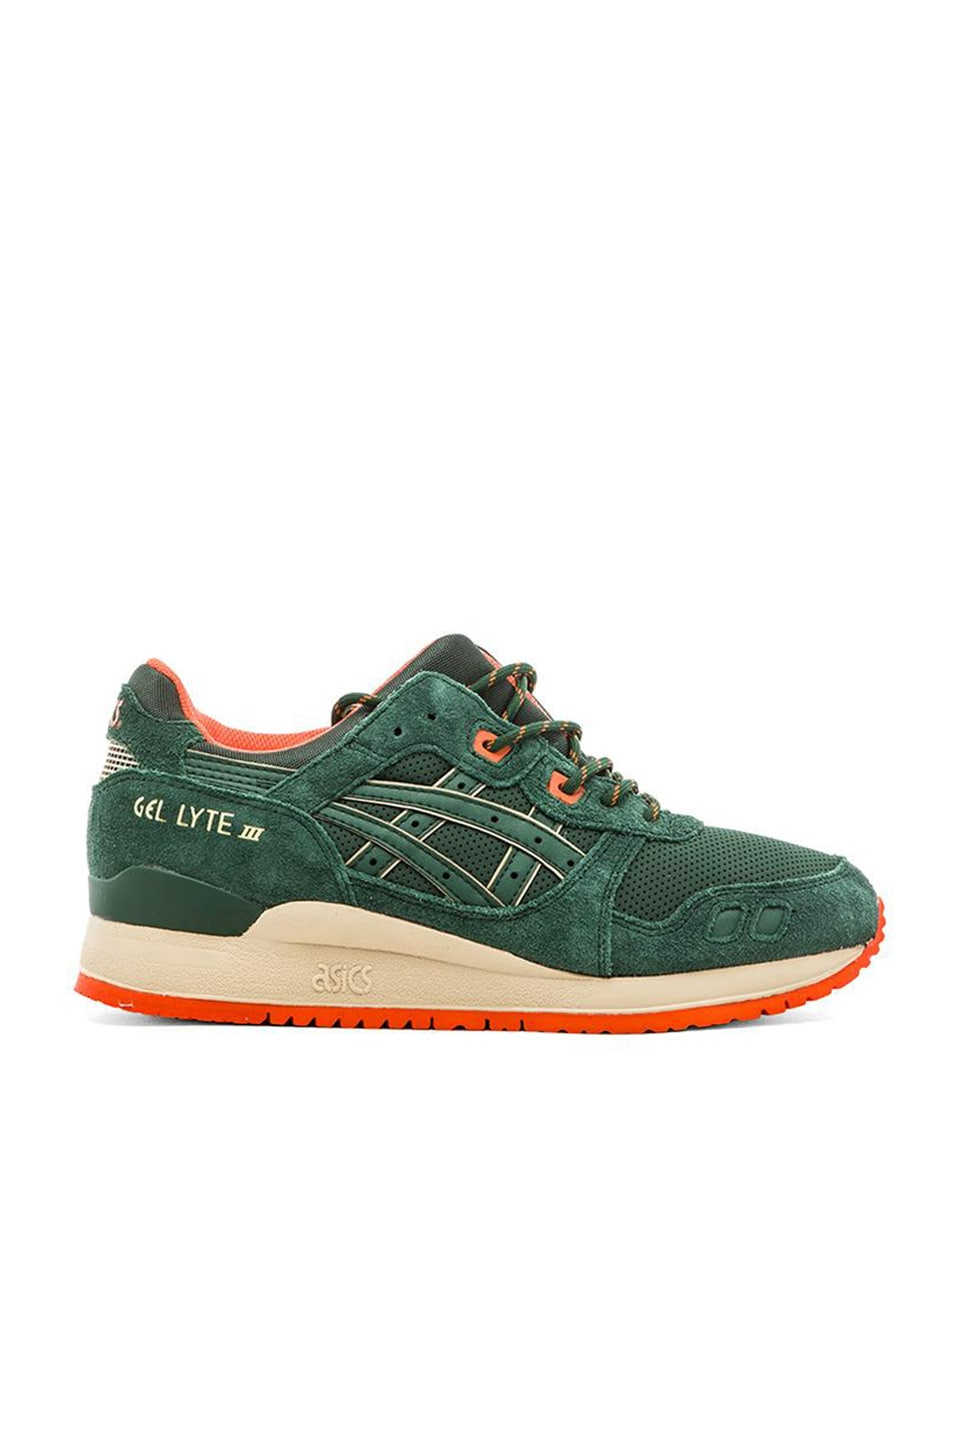 reputable site 8a043 8aabd Asics Gel Lyte lll in Dark Green Dark Green | REVOLVE